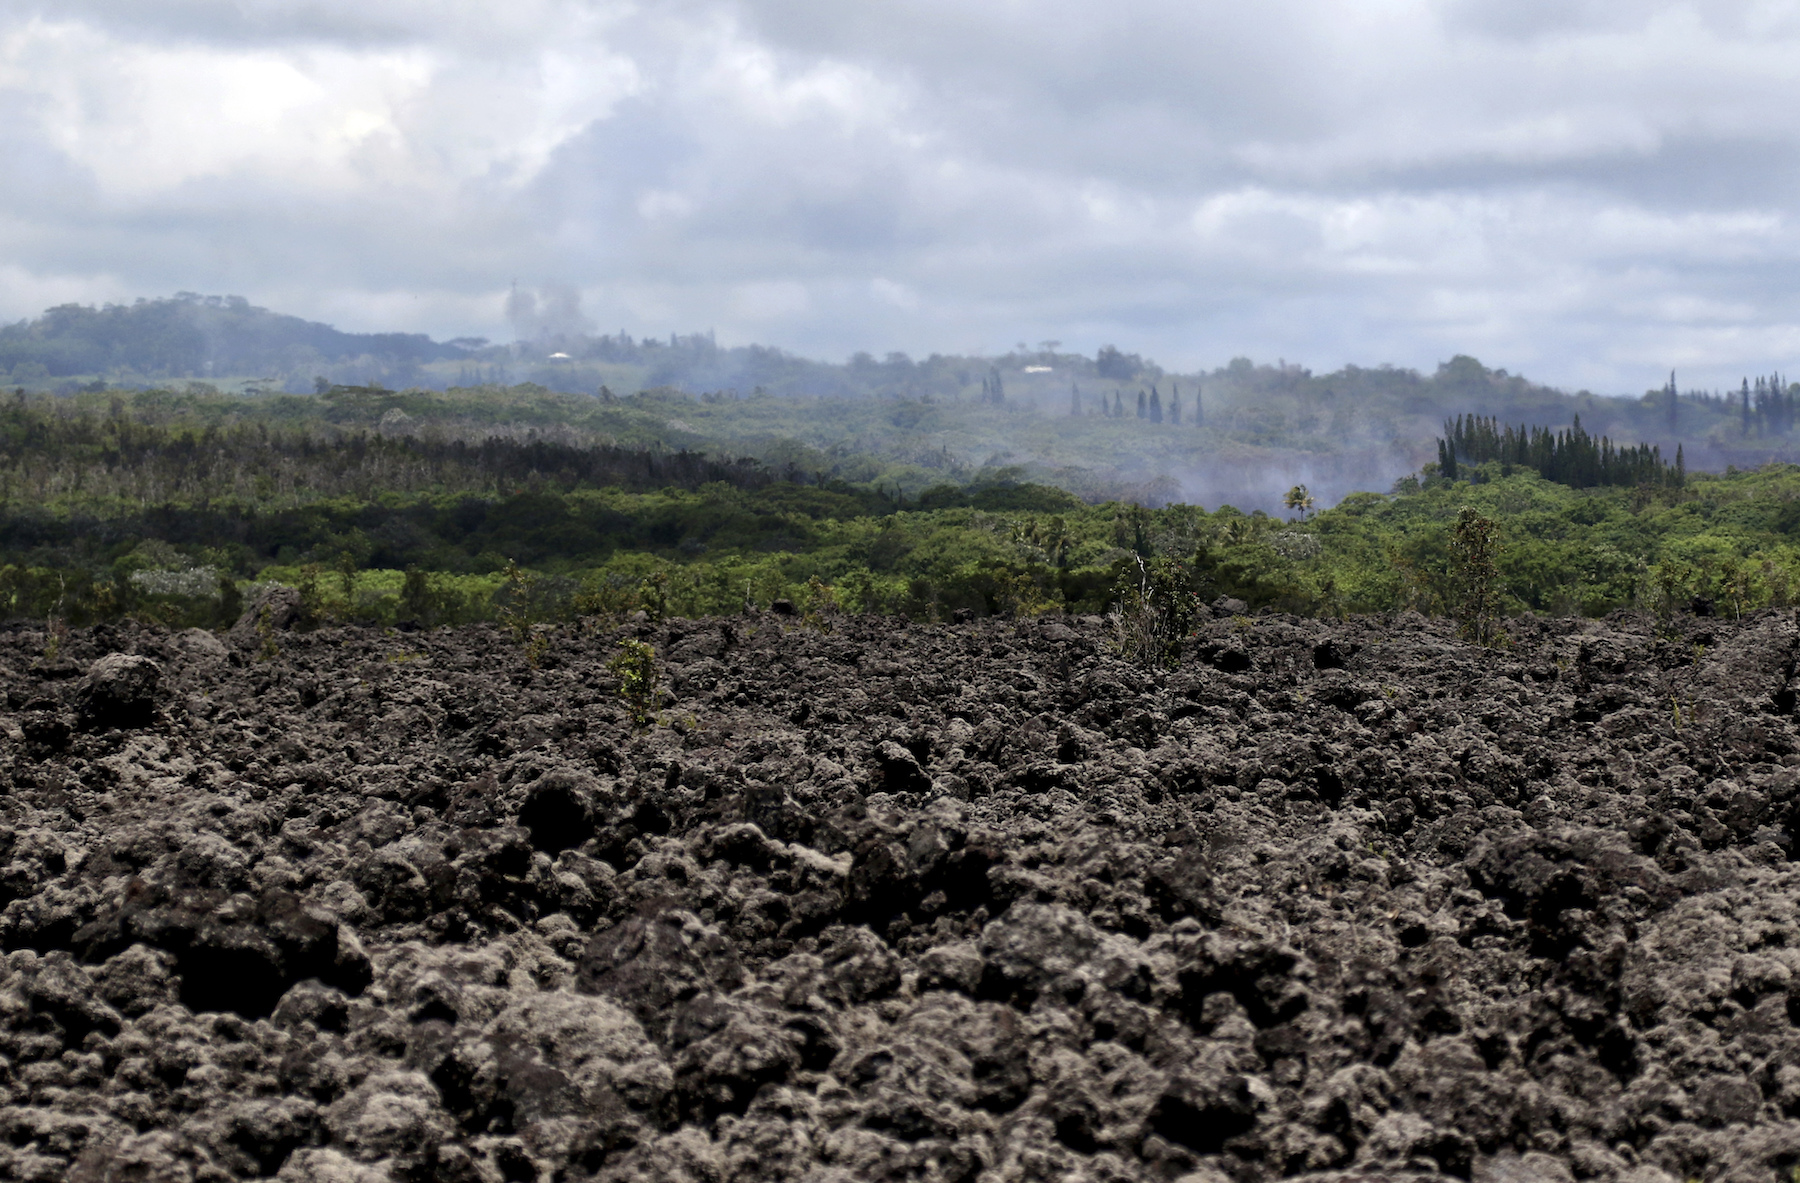 "<div class=""meta image-caption""><div class=""origin-logo origin-image ap""><span>AP</span></div><span class=""caption-text"">Volcanic gases and ash rise from recent lava fissures near Pahoa, Hawaii on Monday, May 14, 2018. The field of hardened lava rocks in the foreground is from previous eruptions. (AP Photo/Caleb Jones)</span></div>"